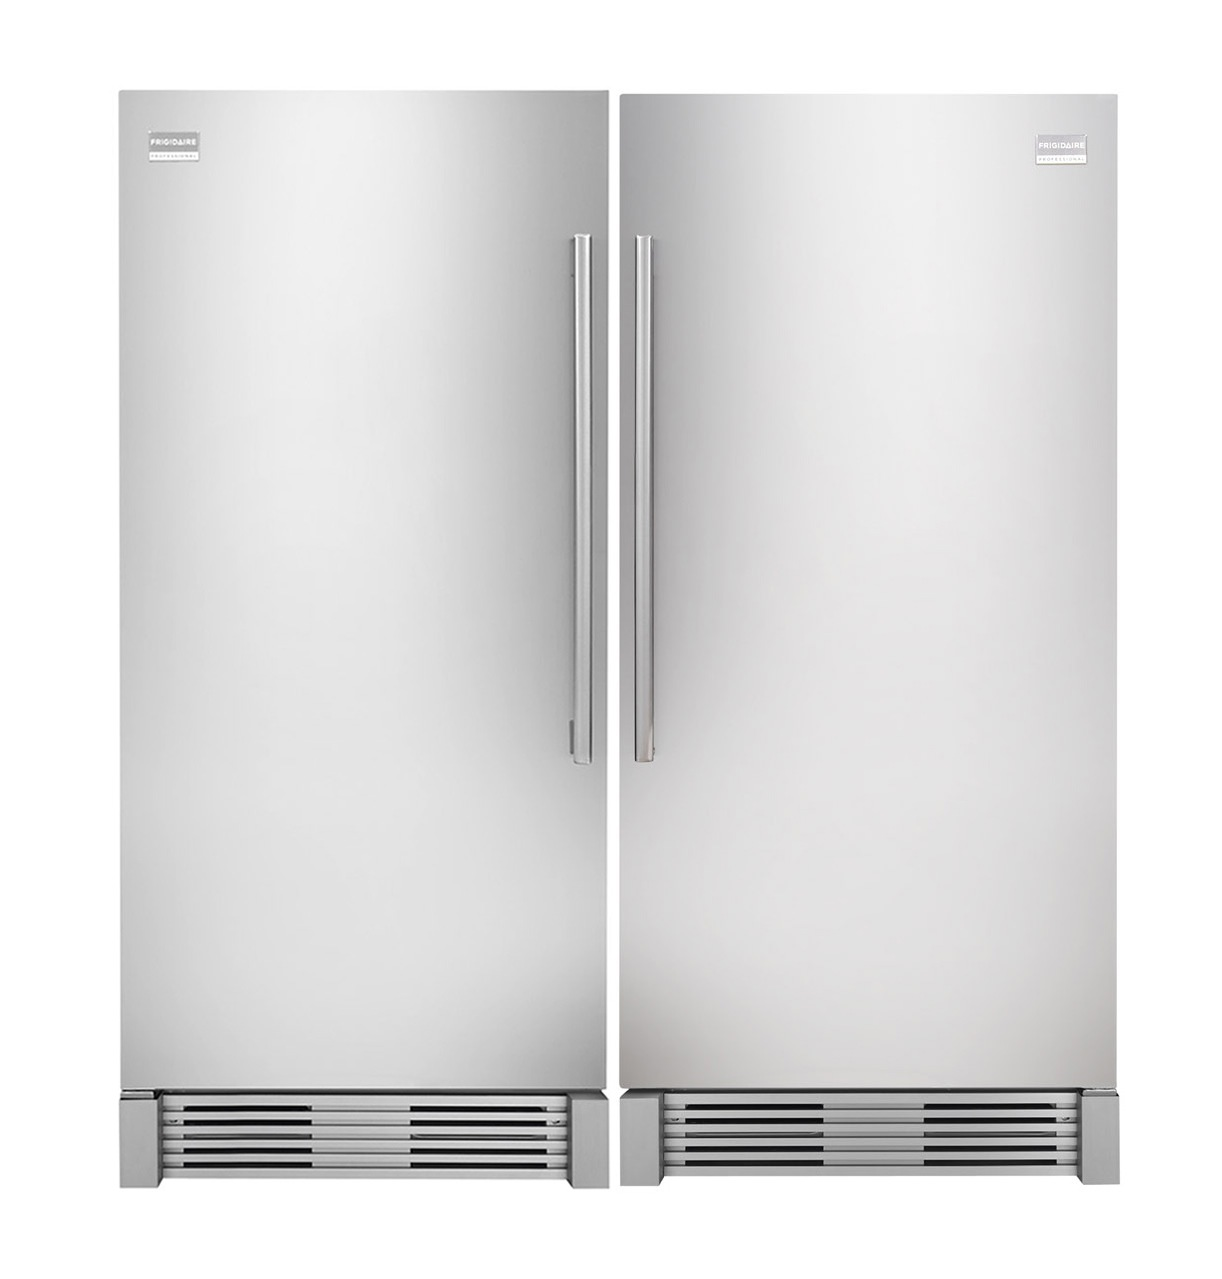 samsung refrigerator model location get free image about. Black Bedroom Furniture Sets. Home Design Ideas